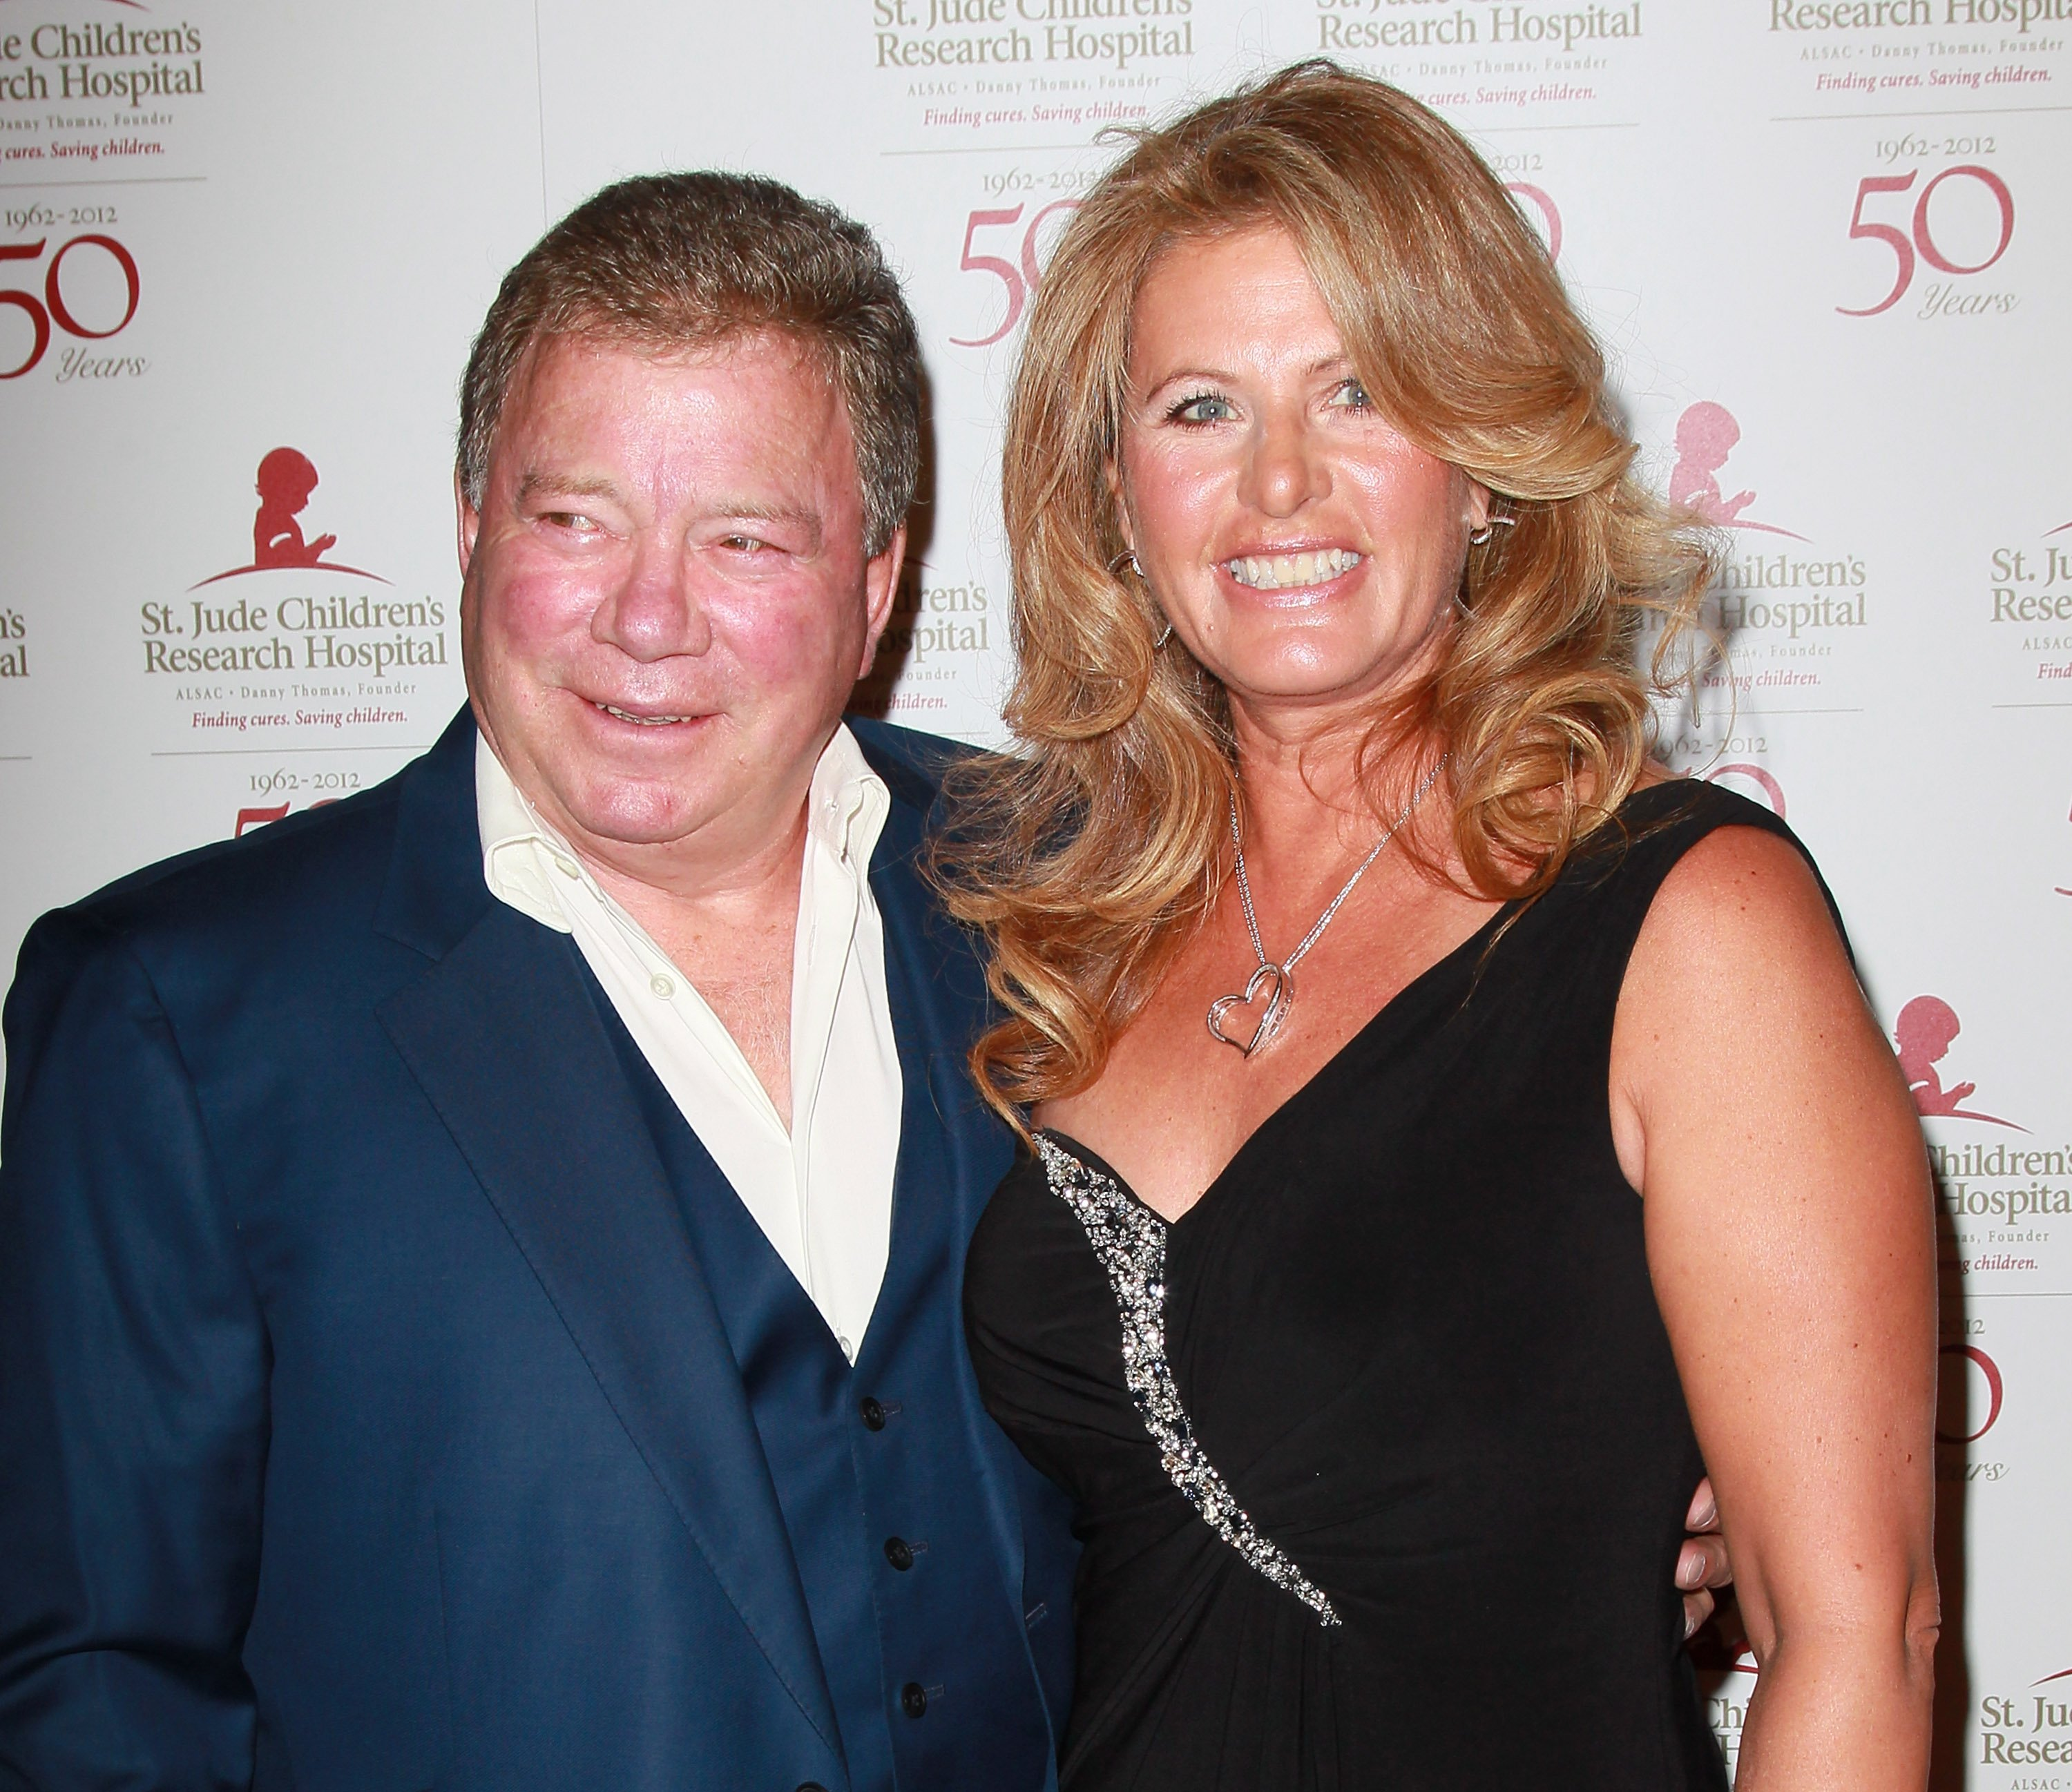 William Shatner (L) and wife Elizabeth Shatner attend the 50th anniversary celebration for St. Jude Children's Research Hospital at The Beverly Hilton hotel on January 7, 2012, in Beverly Hills, California. | Source: Getty Images.